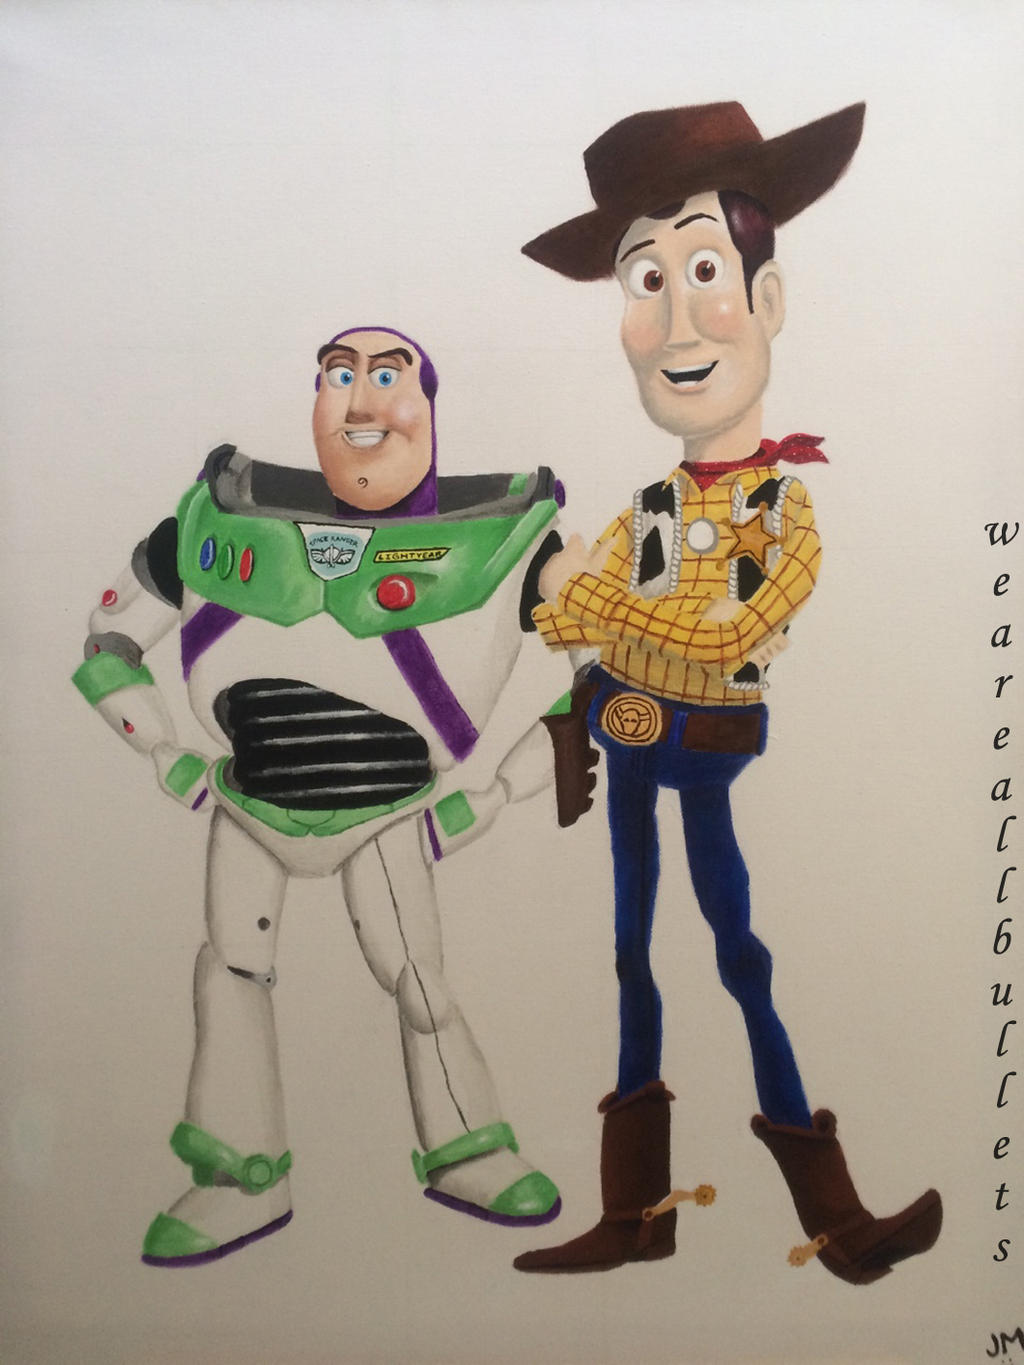 buzz lightyear and woody toy story by weareallbullets on